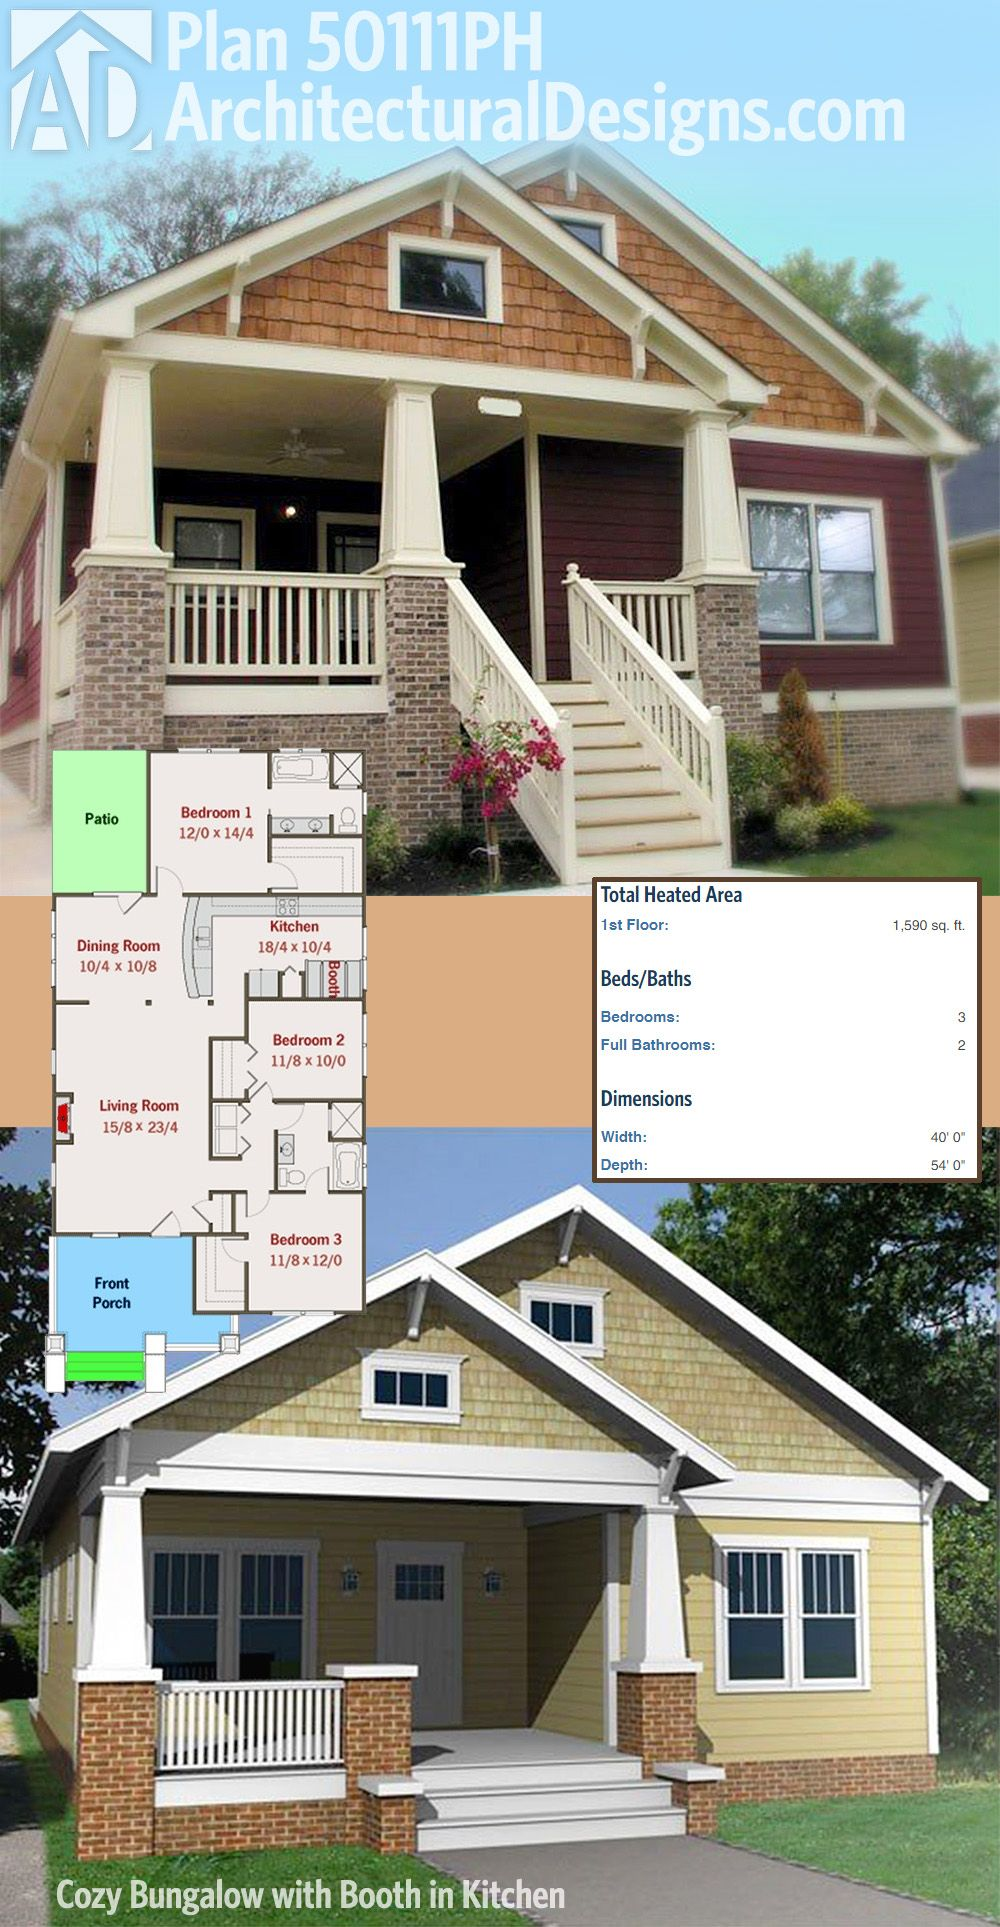 Architectural Designs Bungalow House Plan 50111PH as designed